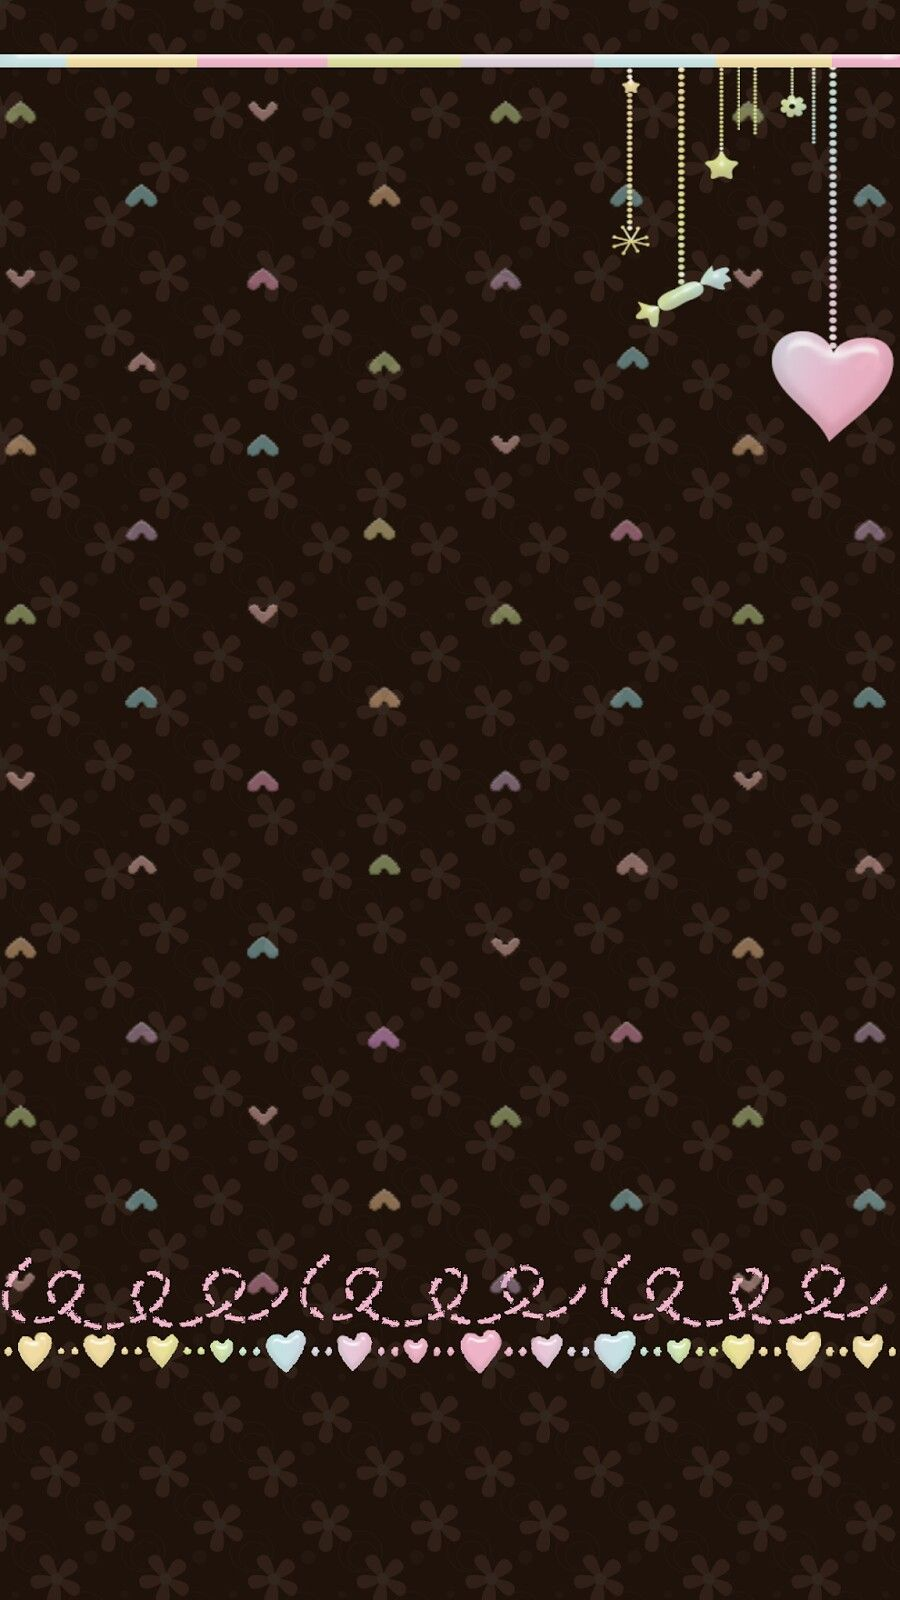 Must see Wallpaper Hello Kitty Smartphone - 099fd60d7bf0ff50f3d52e916960f4b8  Perfect Image Reference_92669.jpg